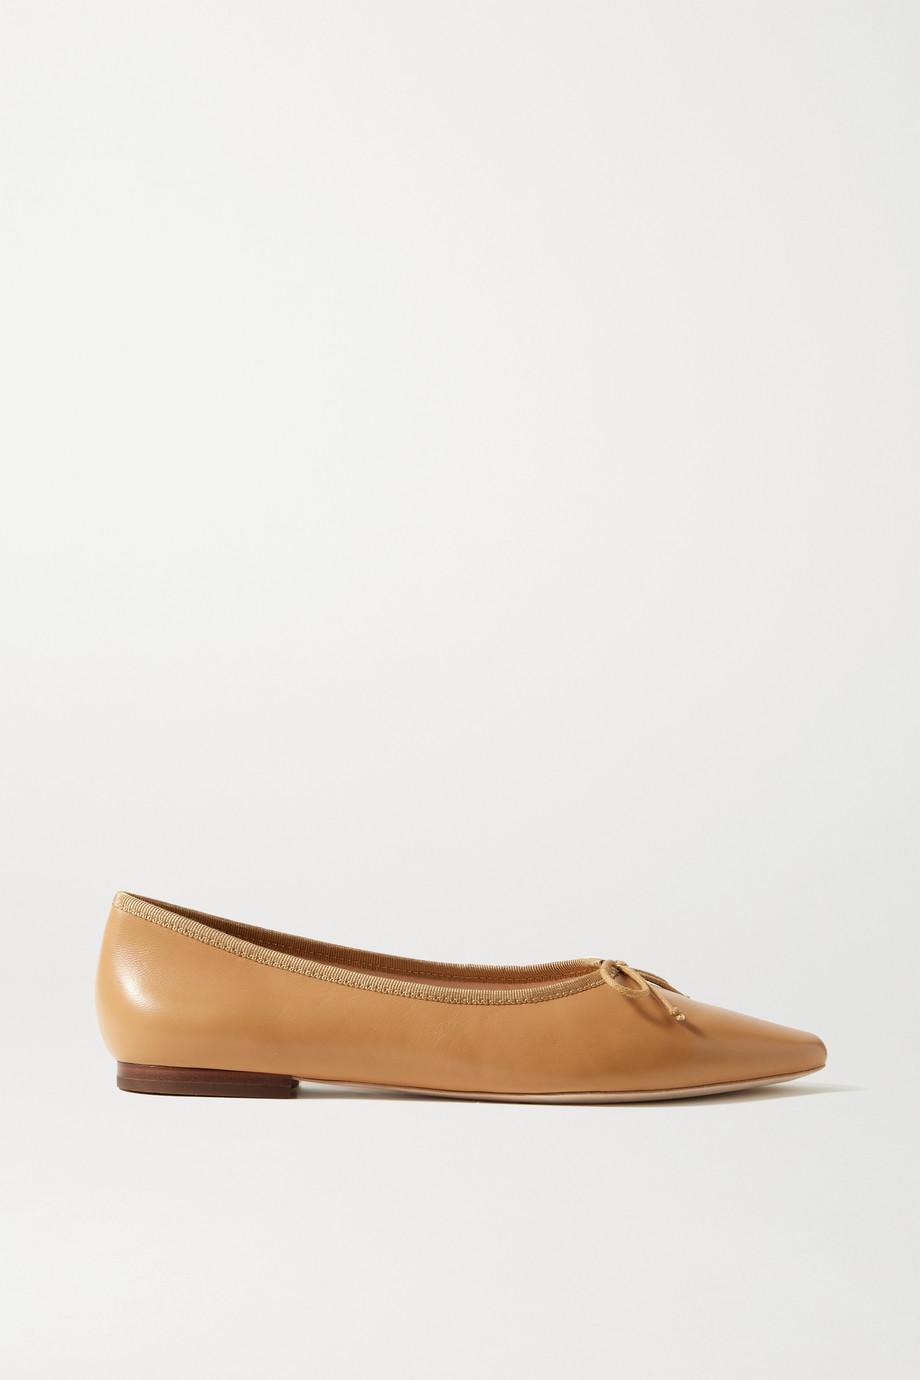 Loeffler Randall Georgie leather ballet flats